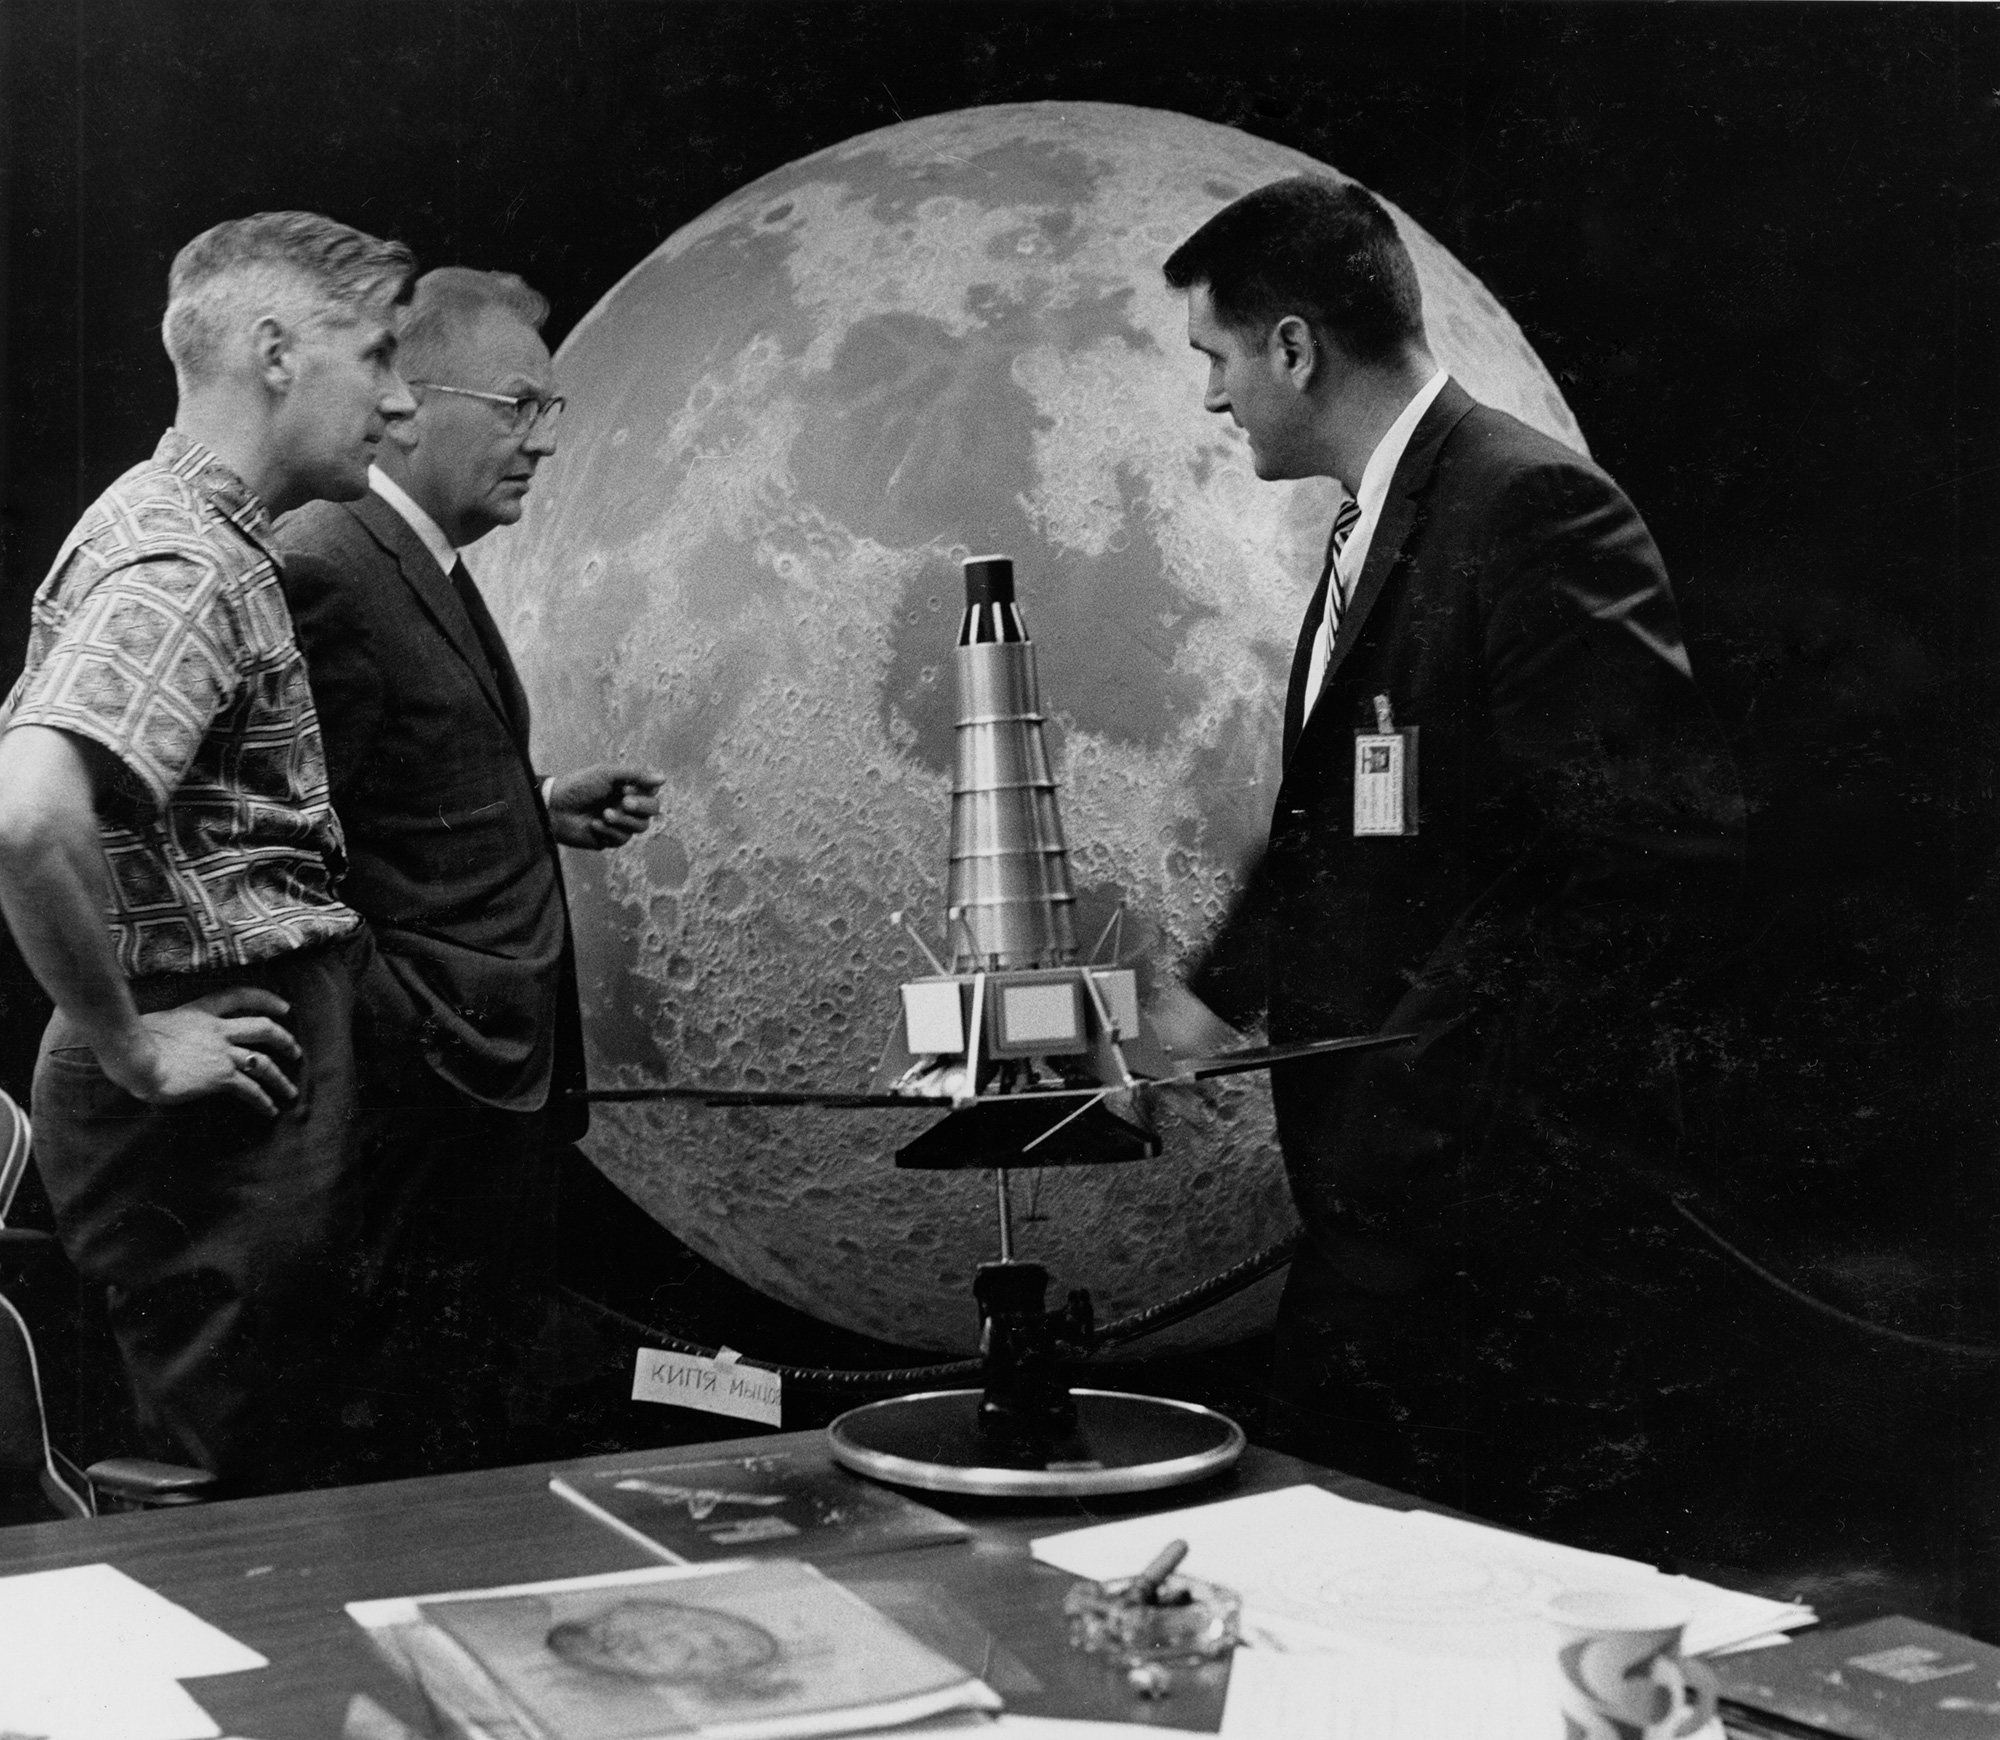 """Ewen Whitaker, Gerard Kuiper and Ray Heacock are pictured in front of a Ranger model and lunar hemisphere, which is now located at the Flandrau Science Center and Planetarium at the University of Arizona. A sign in front of half-globe reads """"keep yer mitt"""